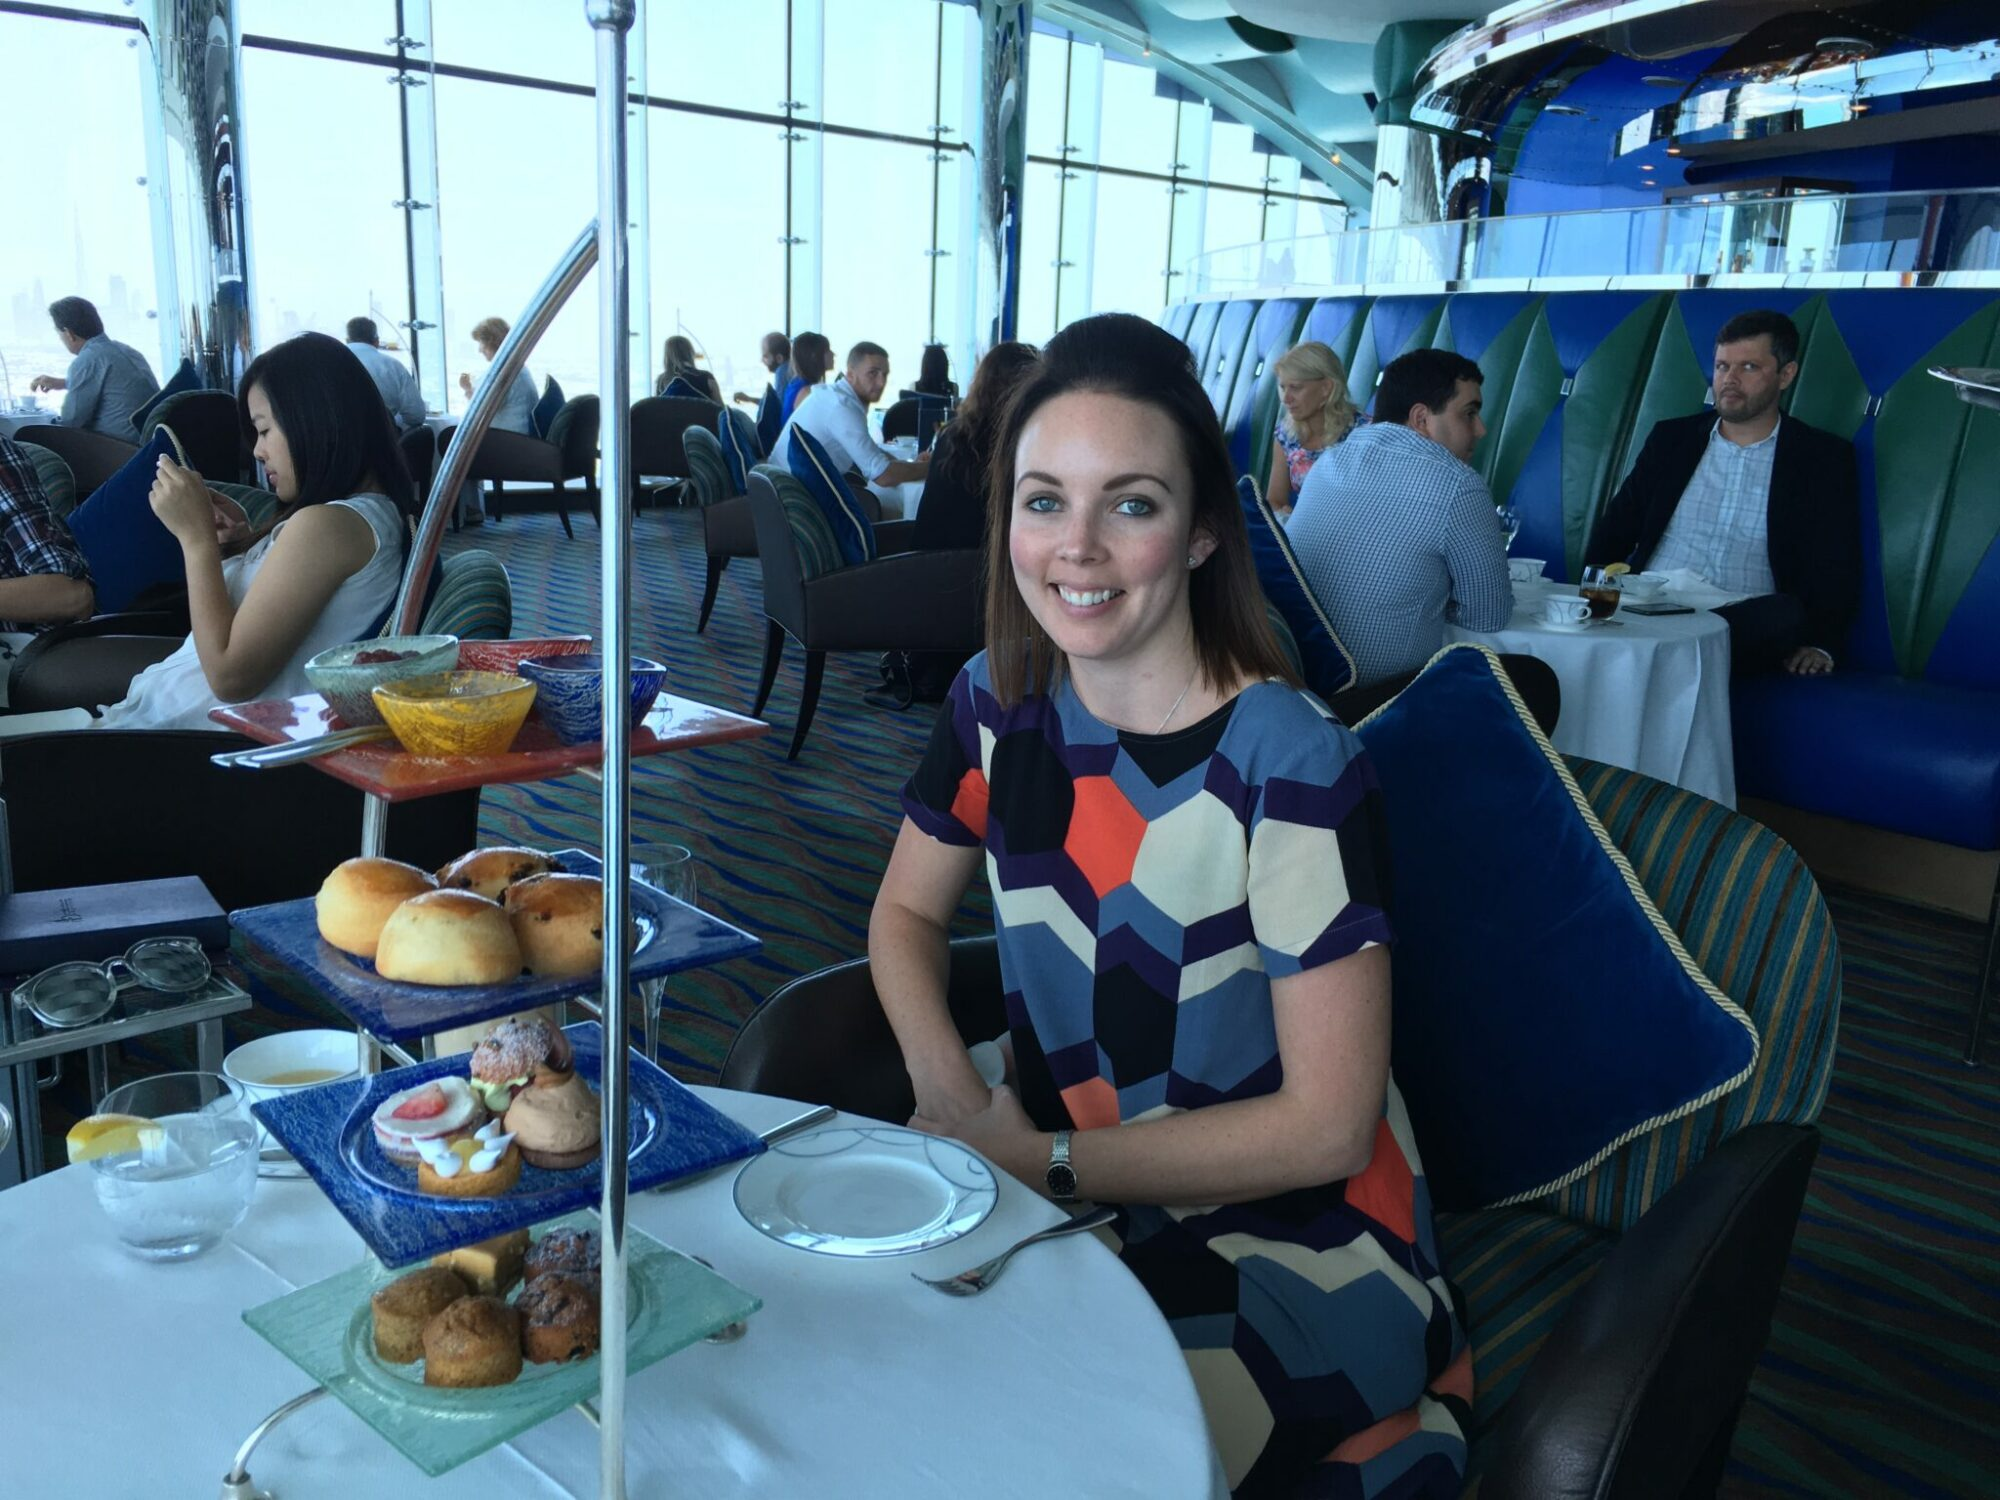 Afternoon Tea at Burj Al Arab